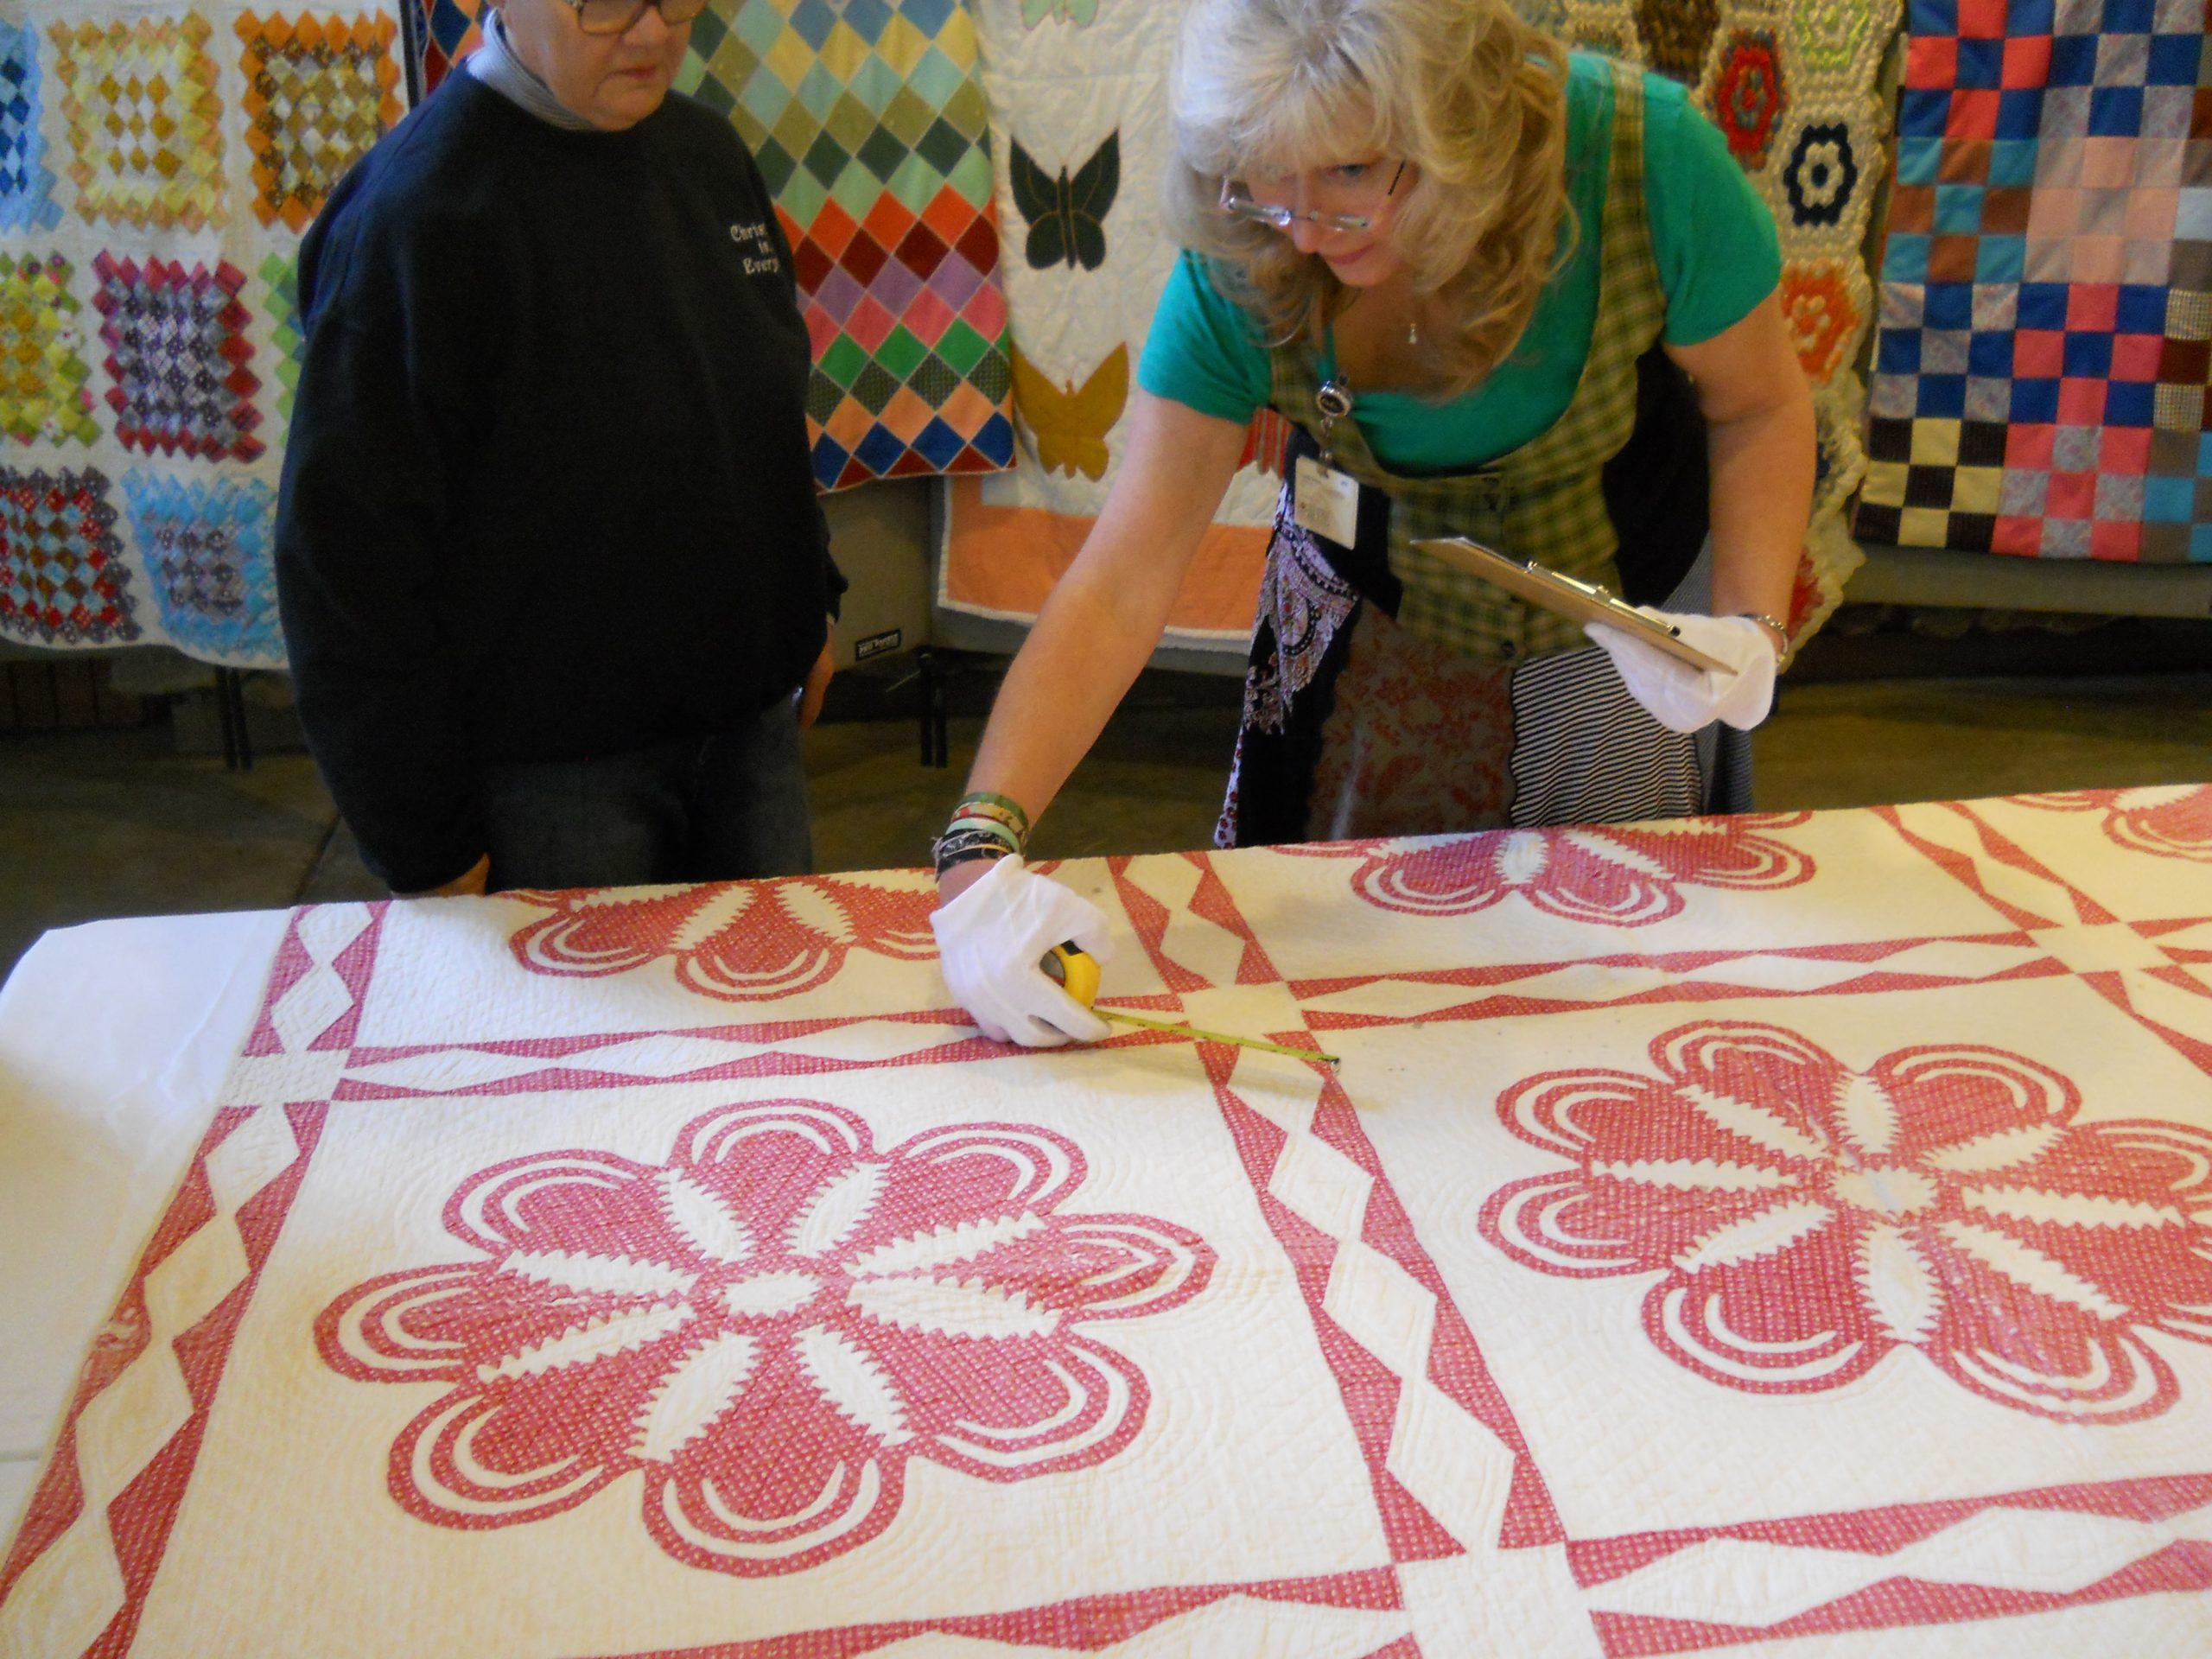 Measuring parts of a quilt